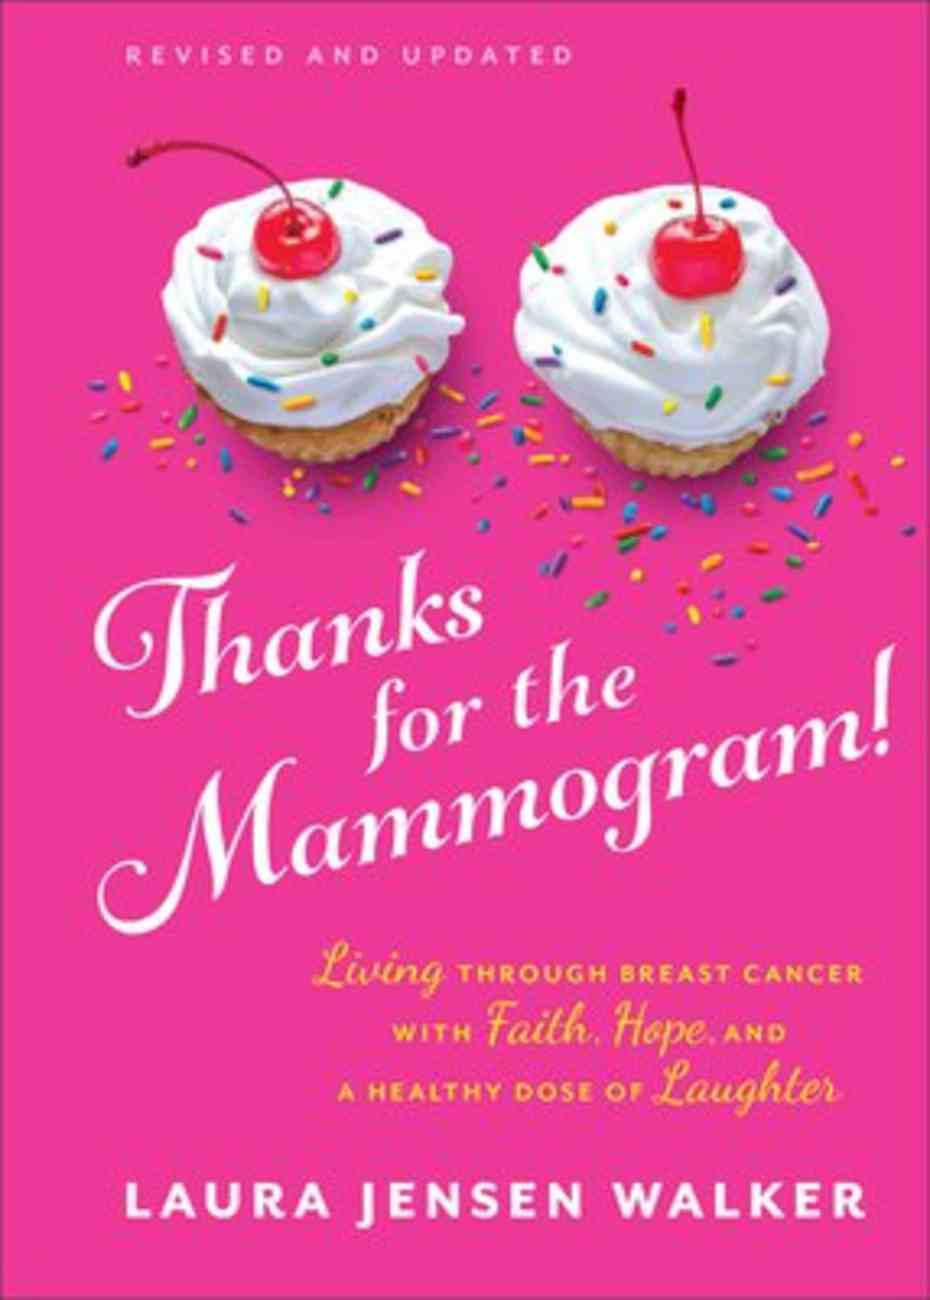 Thanks For the Mammogram!: Living Through Breast Cancer With Faith, Hope, and a Healthy Dose of Laughter Hardback